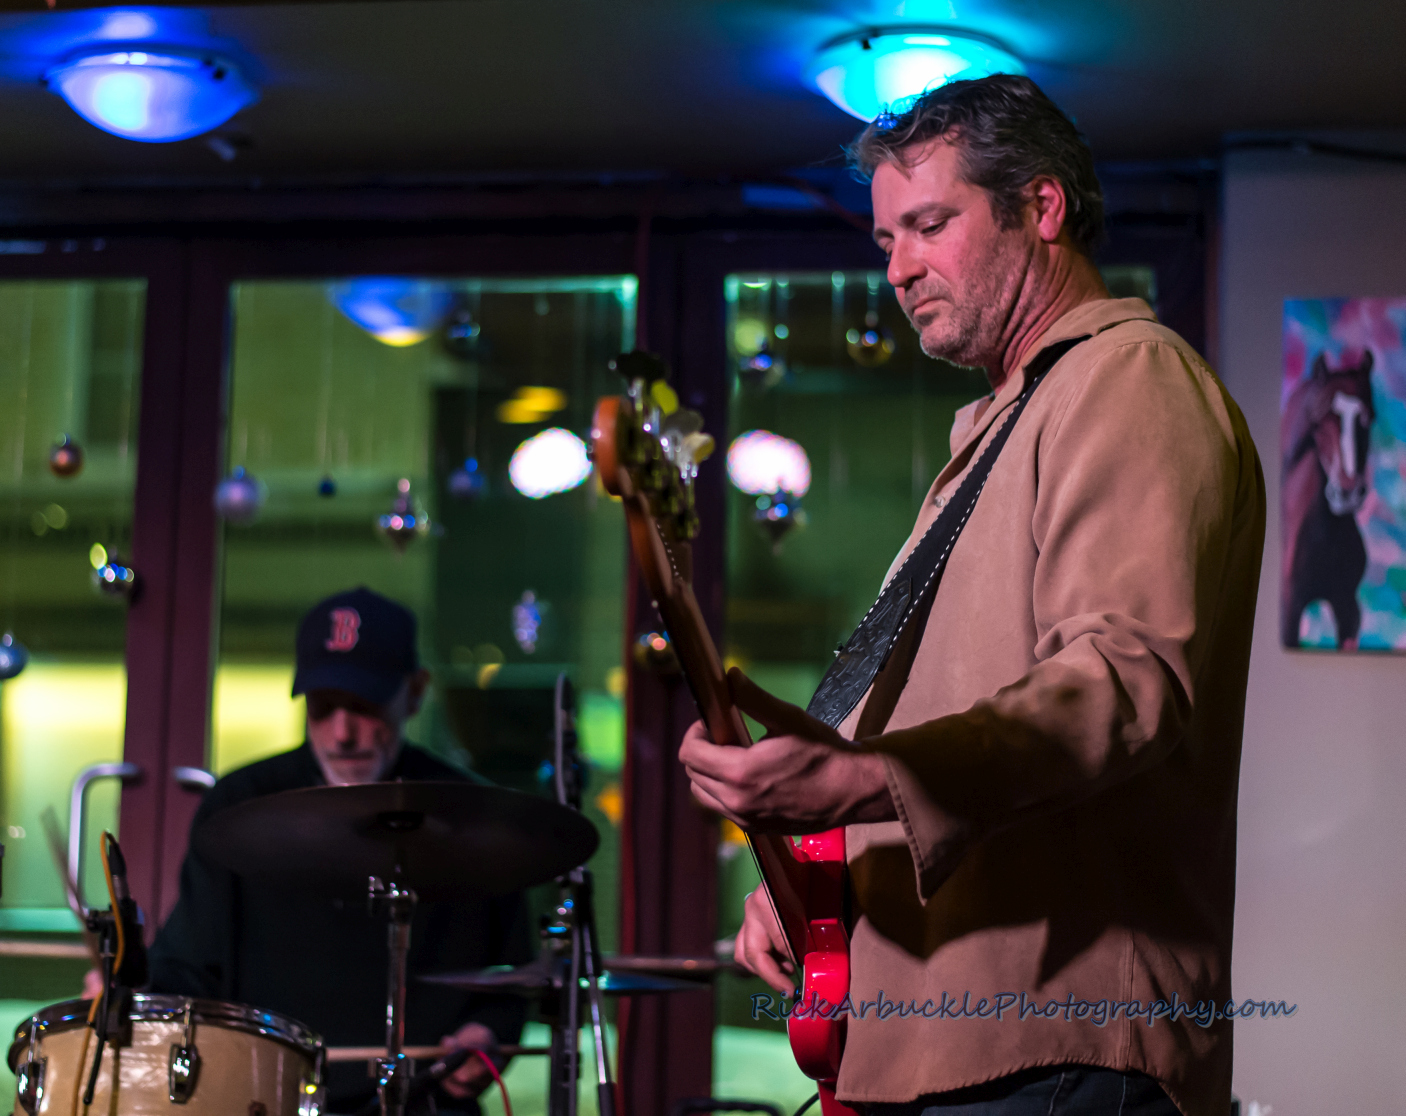 Rod Williams Band - Atomic Rooster 2016 12 17  15